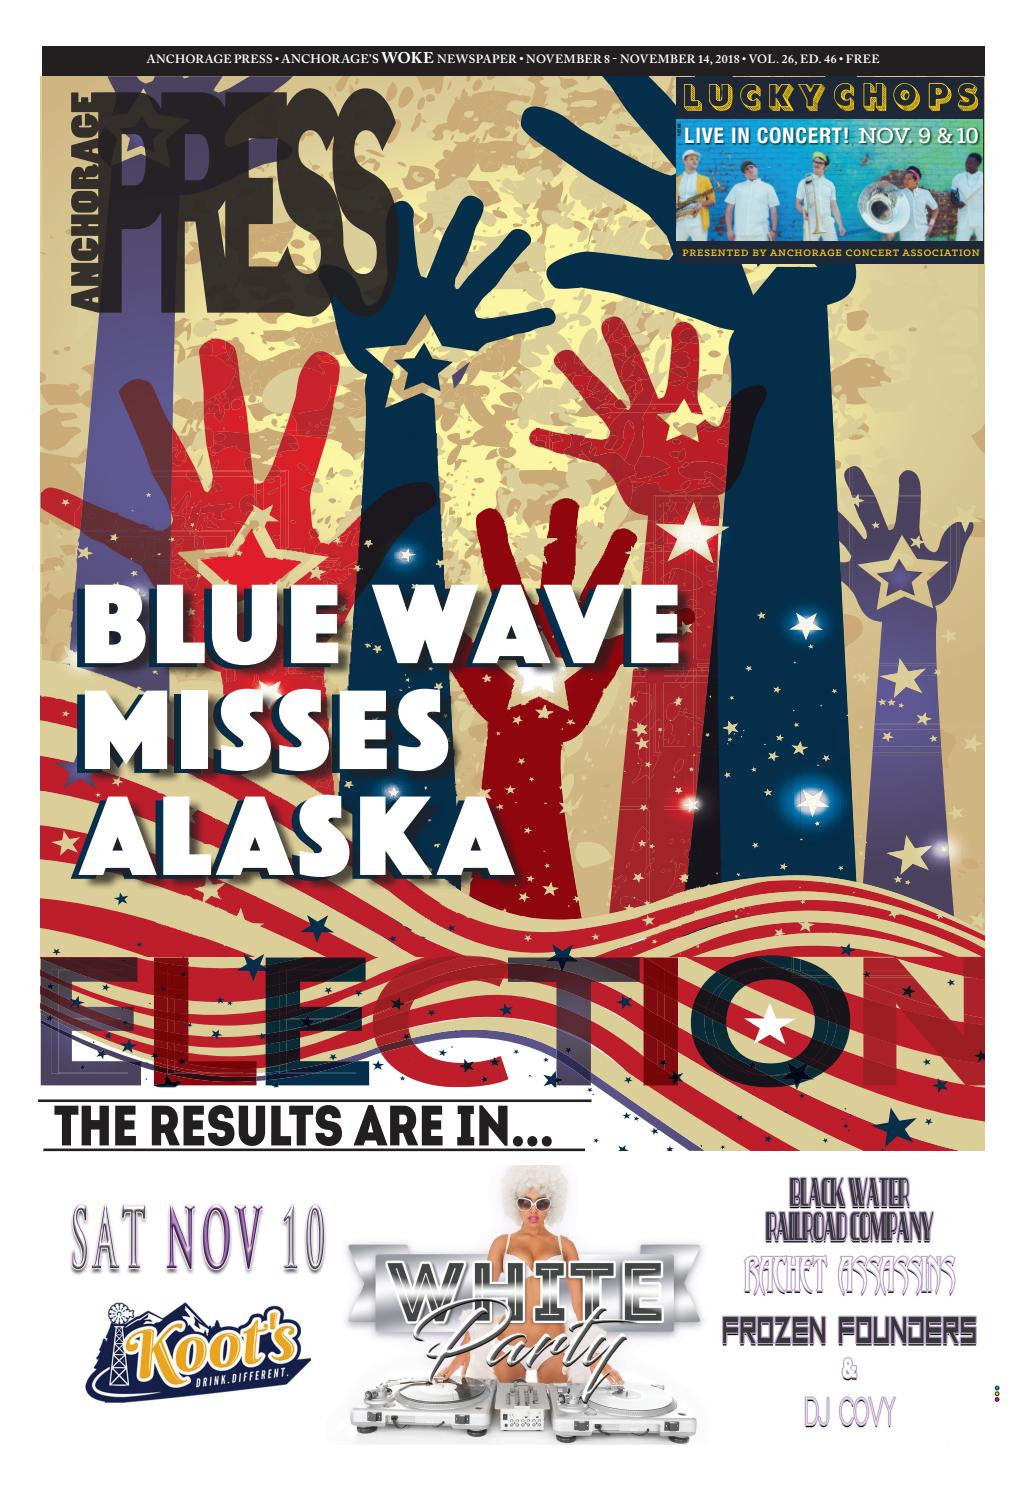 Anchorage Press November 8, 2018 by Wick Communications - issuu